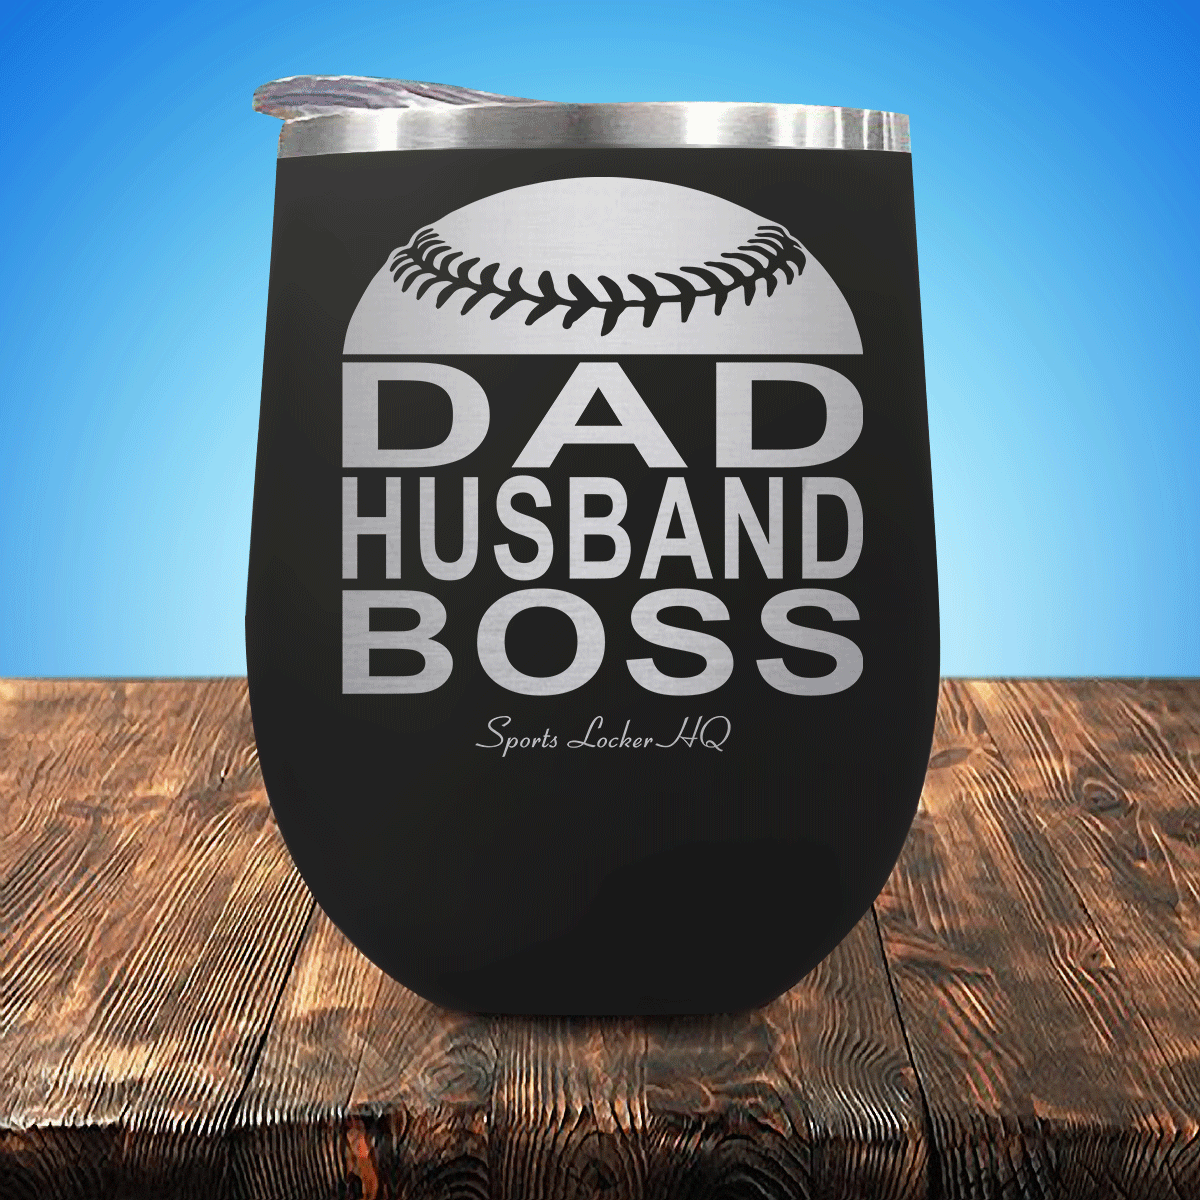 Baseball/Softball Dad Husband Boss Stemless Wine Cup